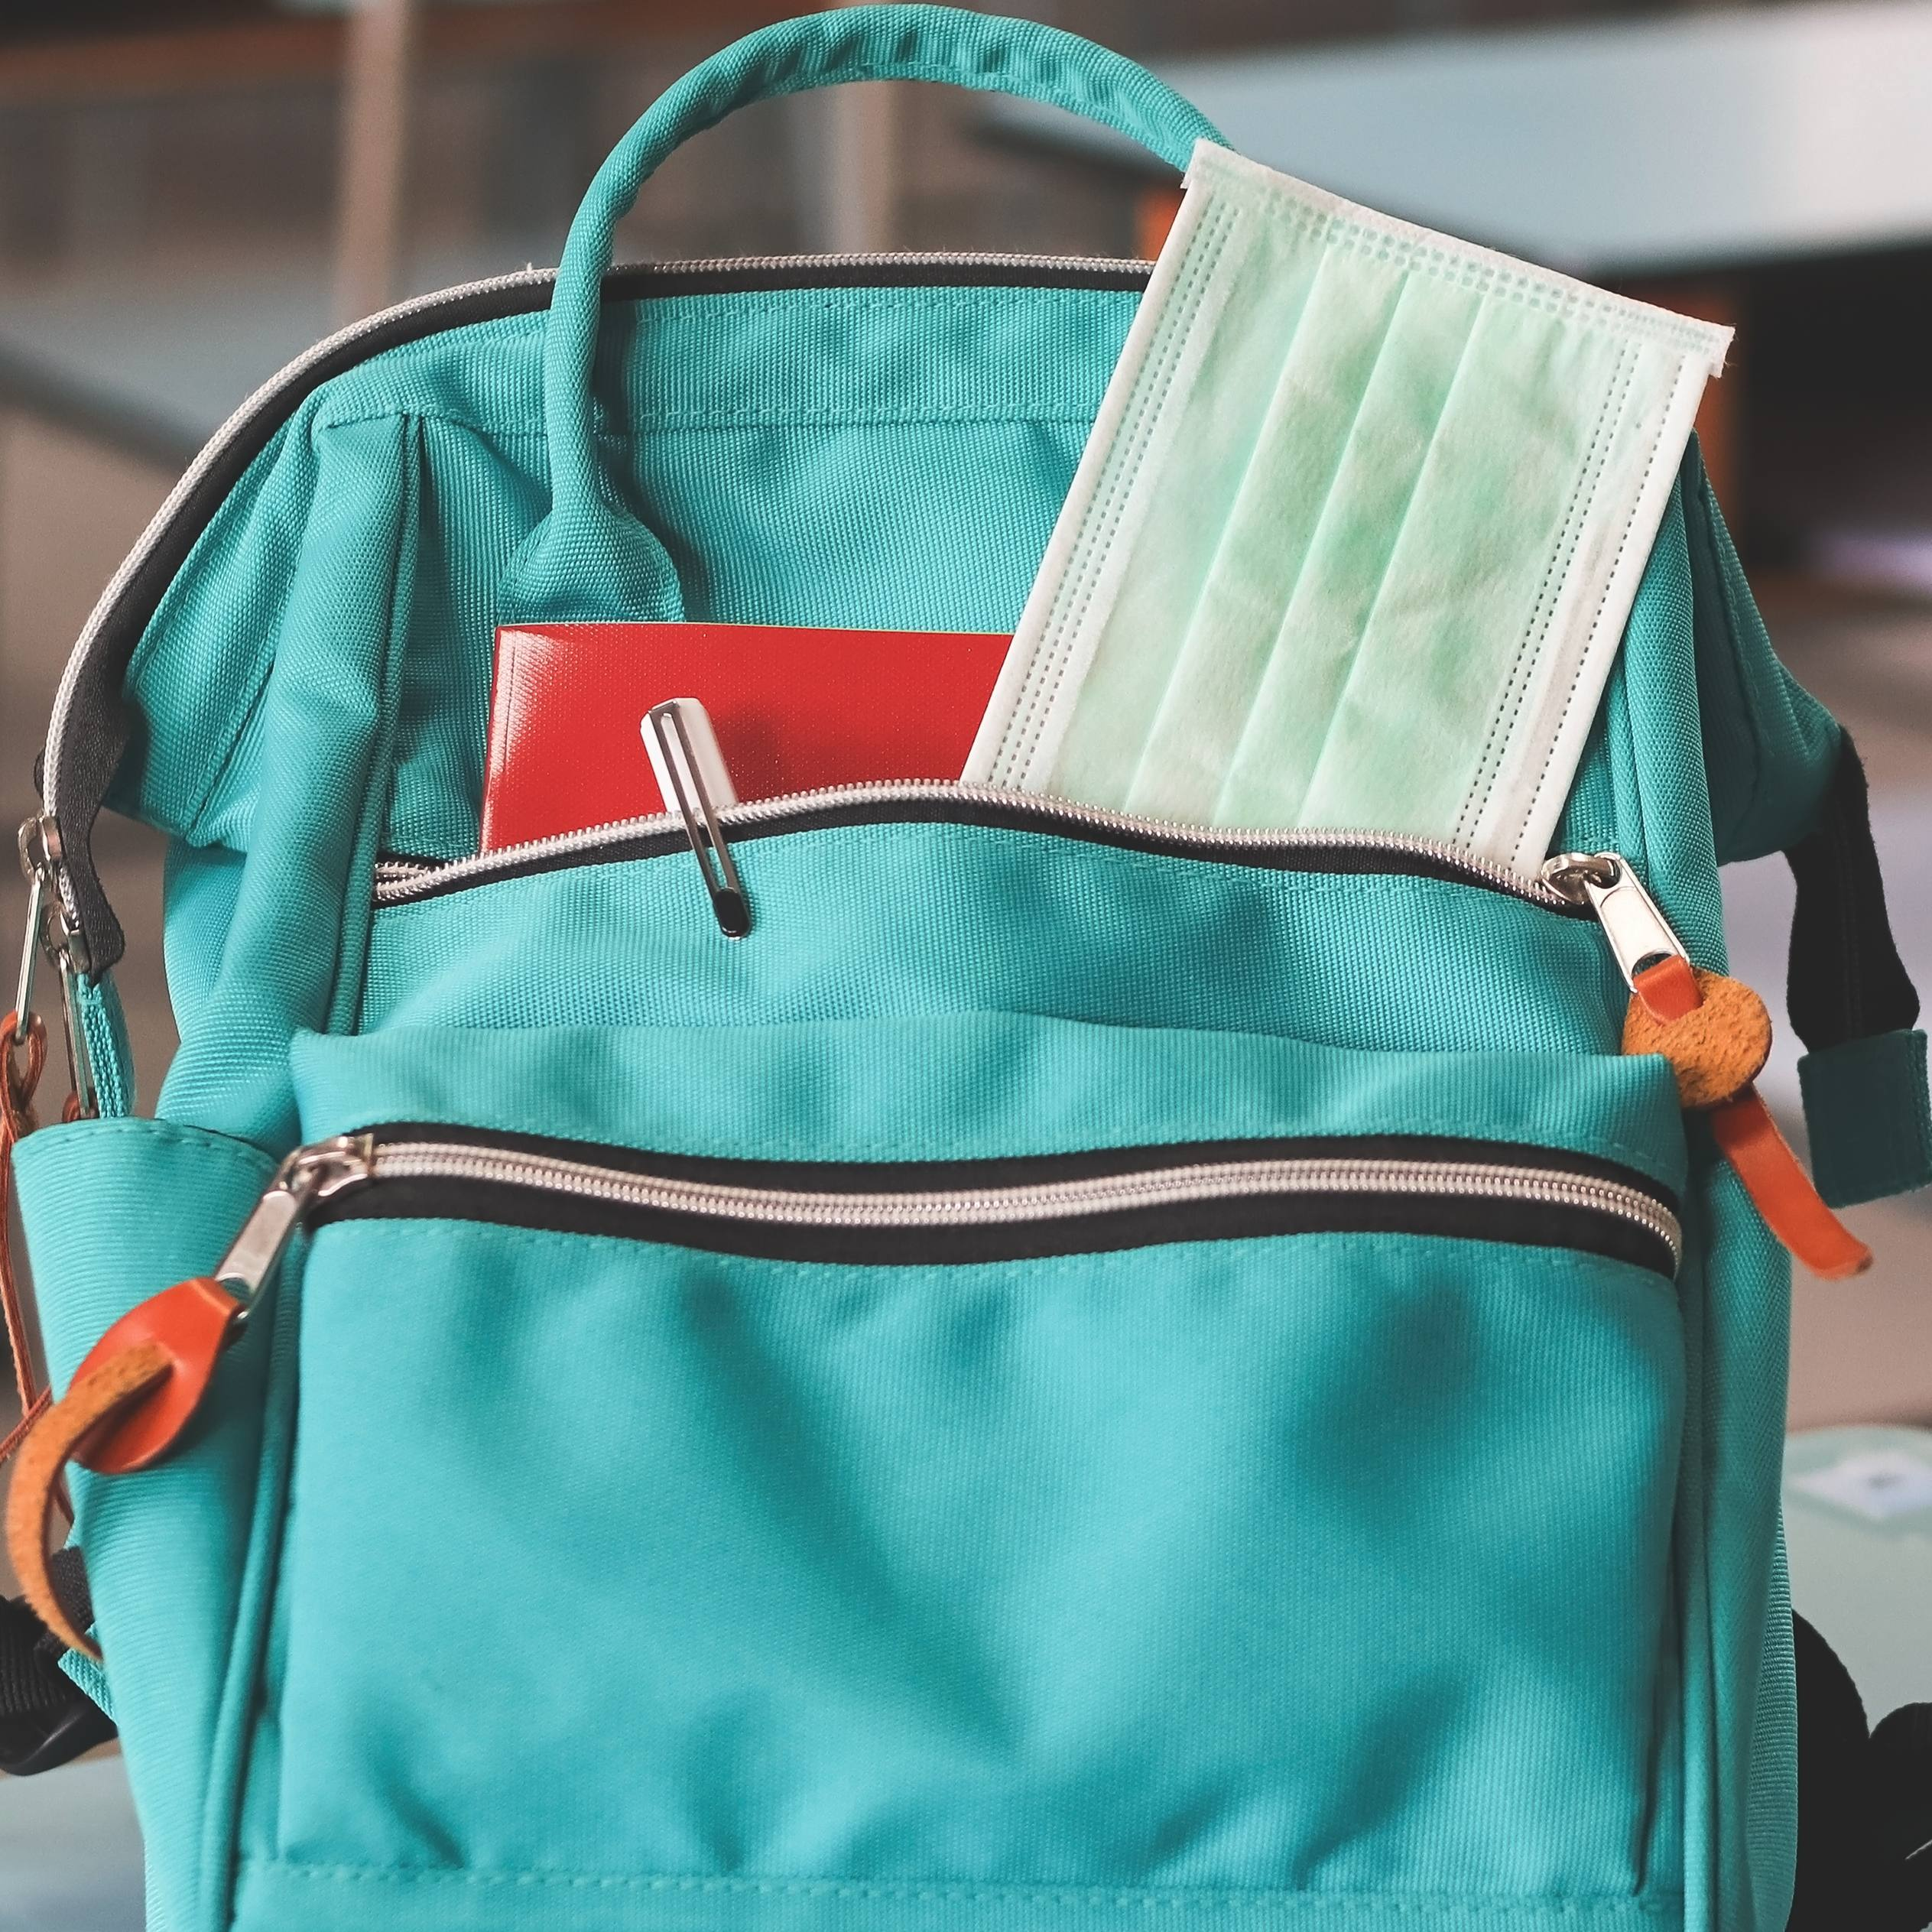 School backpack with mask tucked into pocket and hand sanitizer on desk